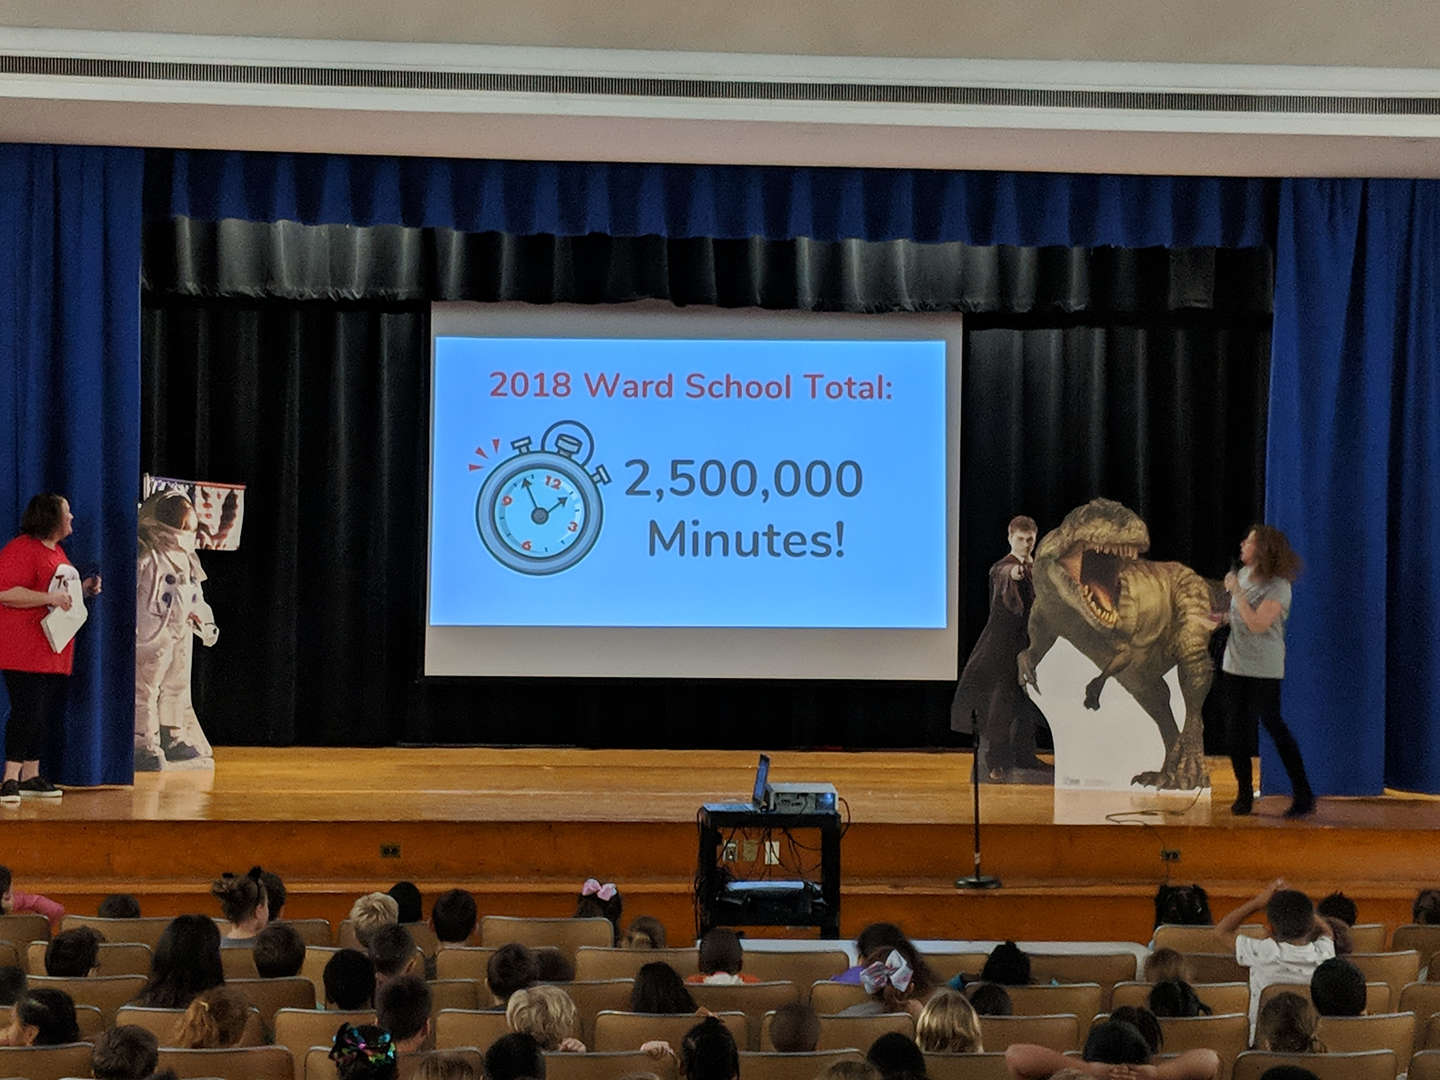 Teachers shared last year's total of 2,500,000 minutes of reading.